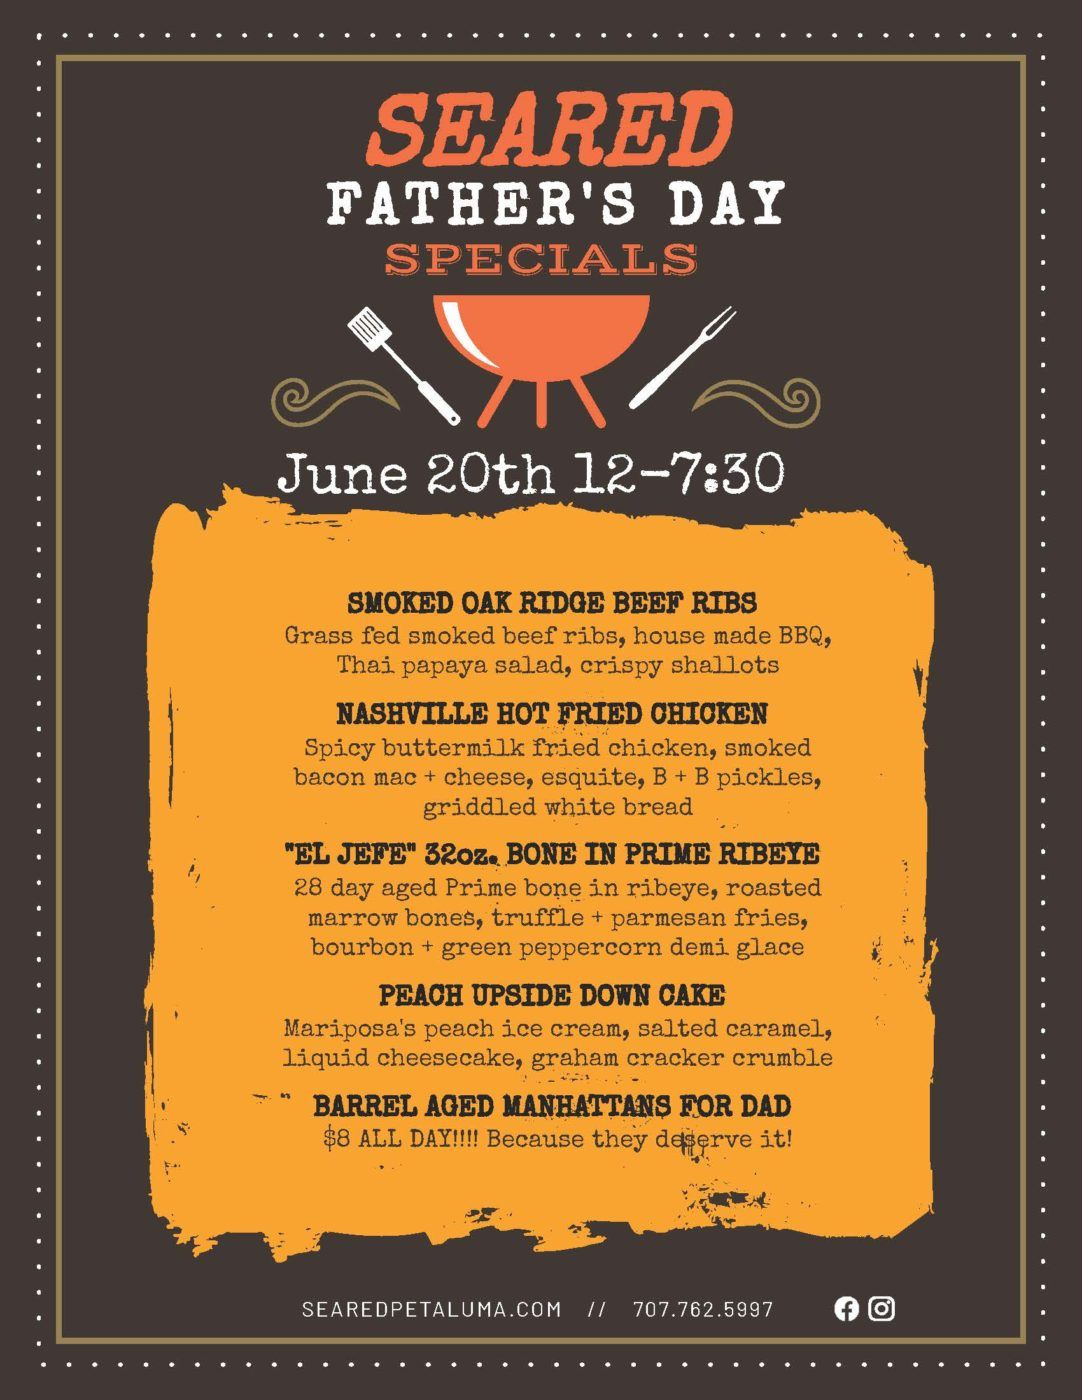 Father's Day Specials at Seared June 20th, 2021